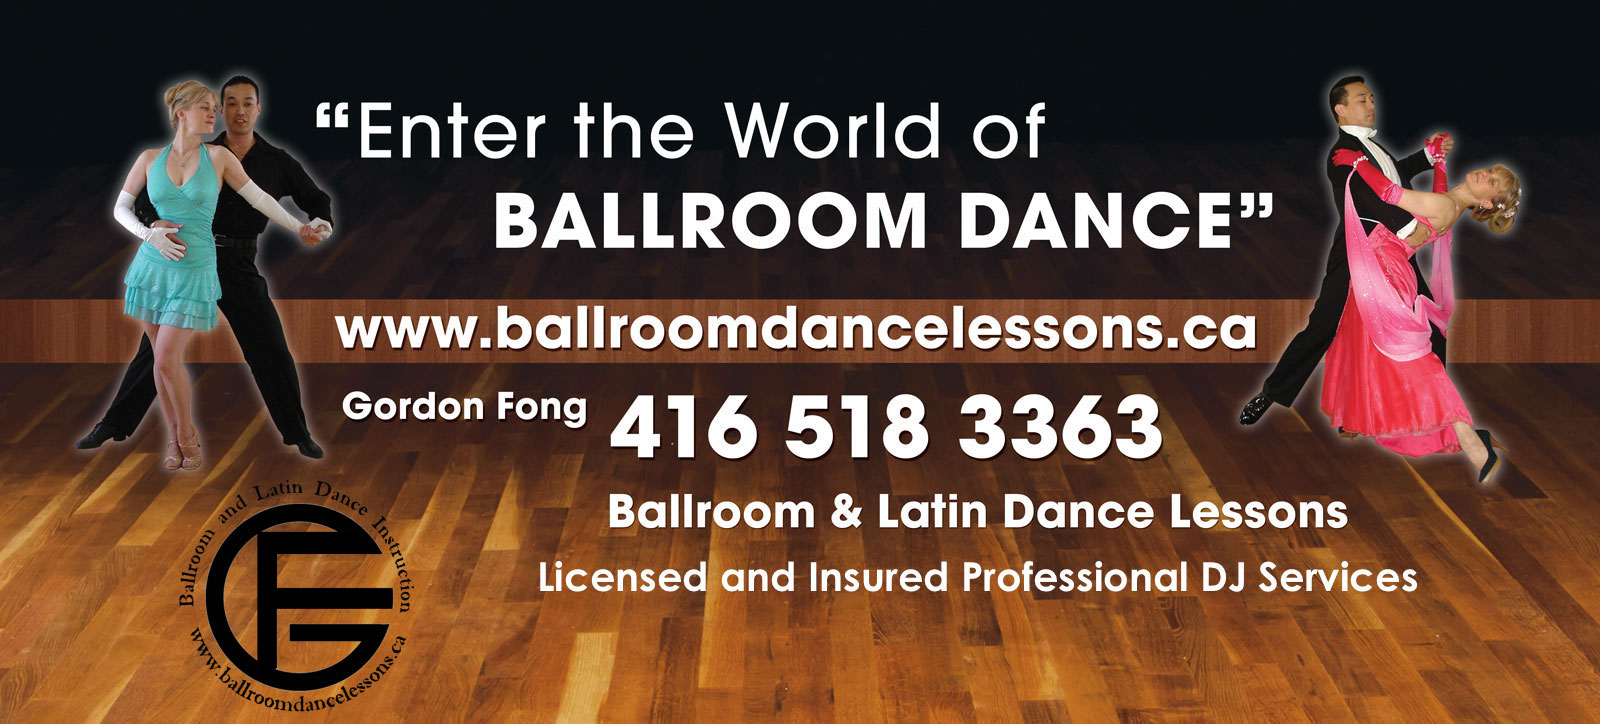 Gordon Fong Group Lessons 8-9 pm and Dance Practices 9-11 pm